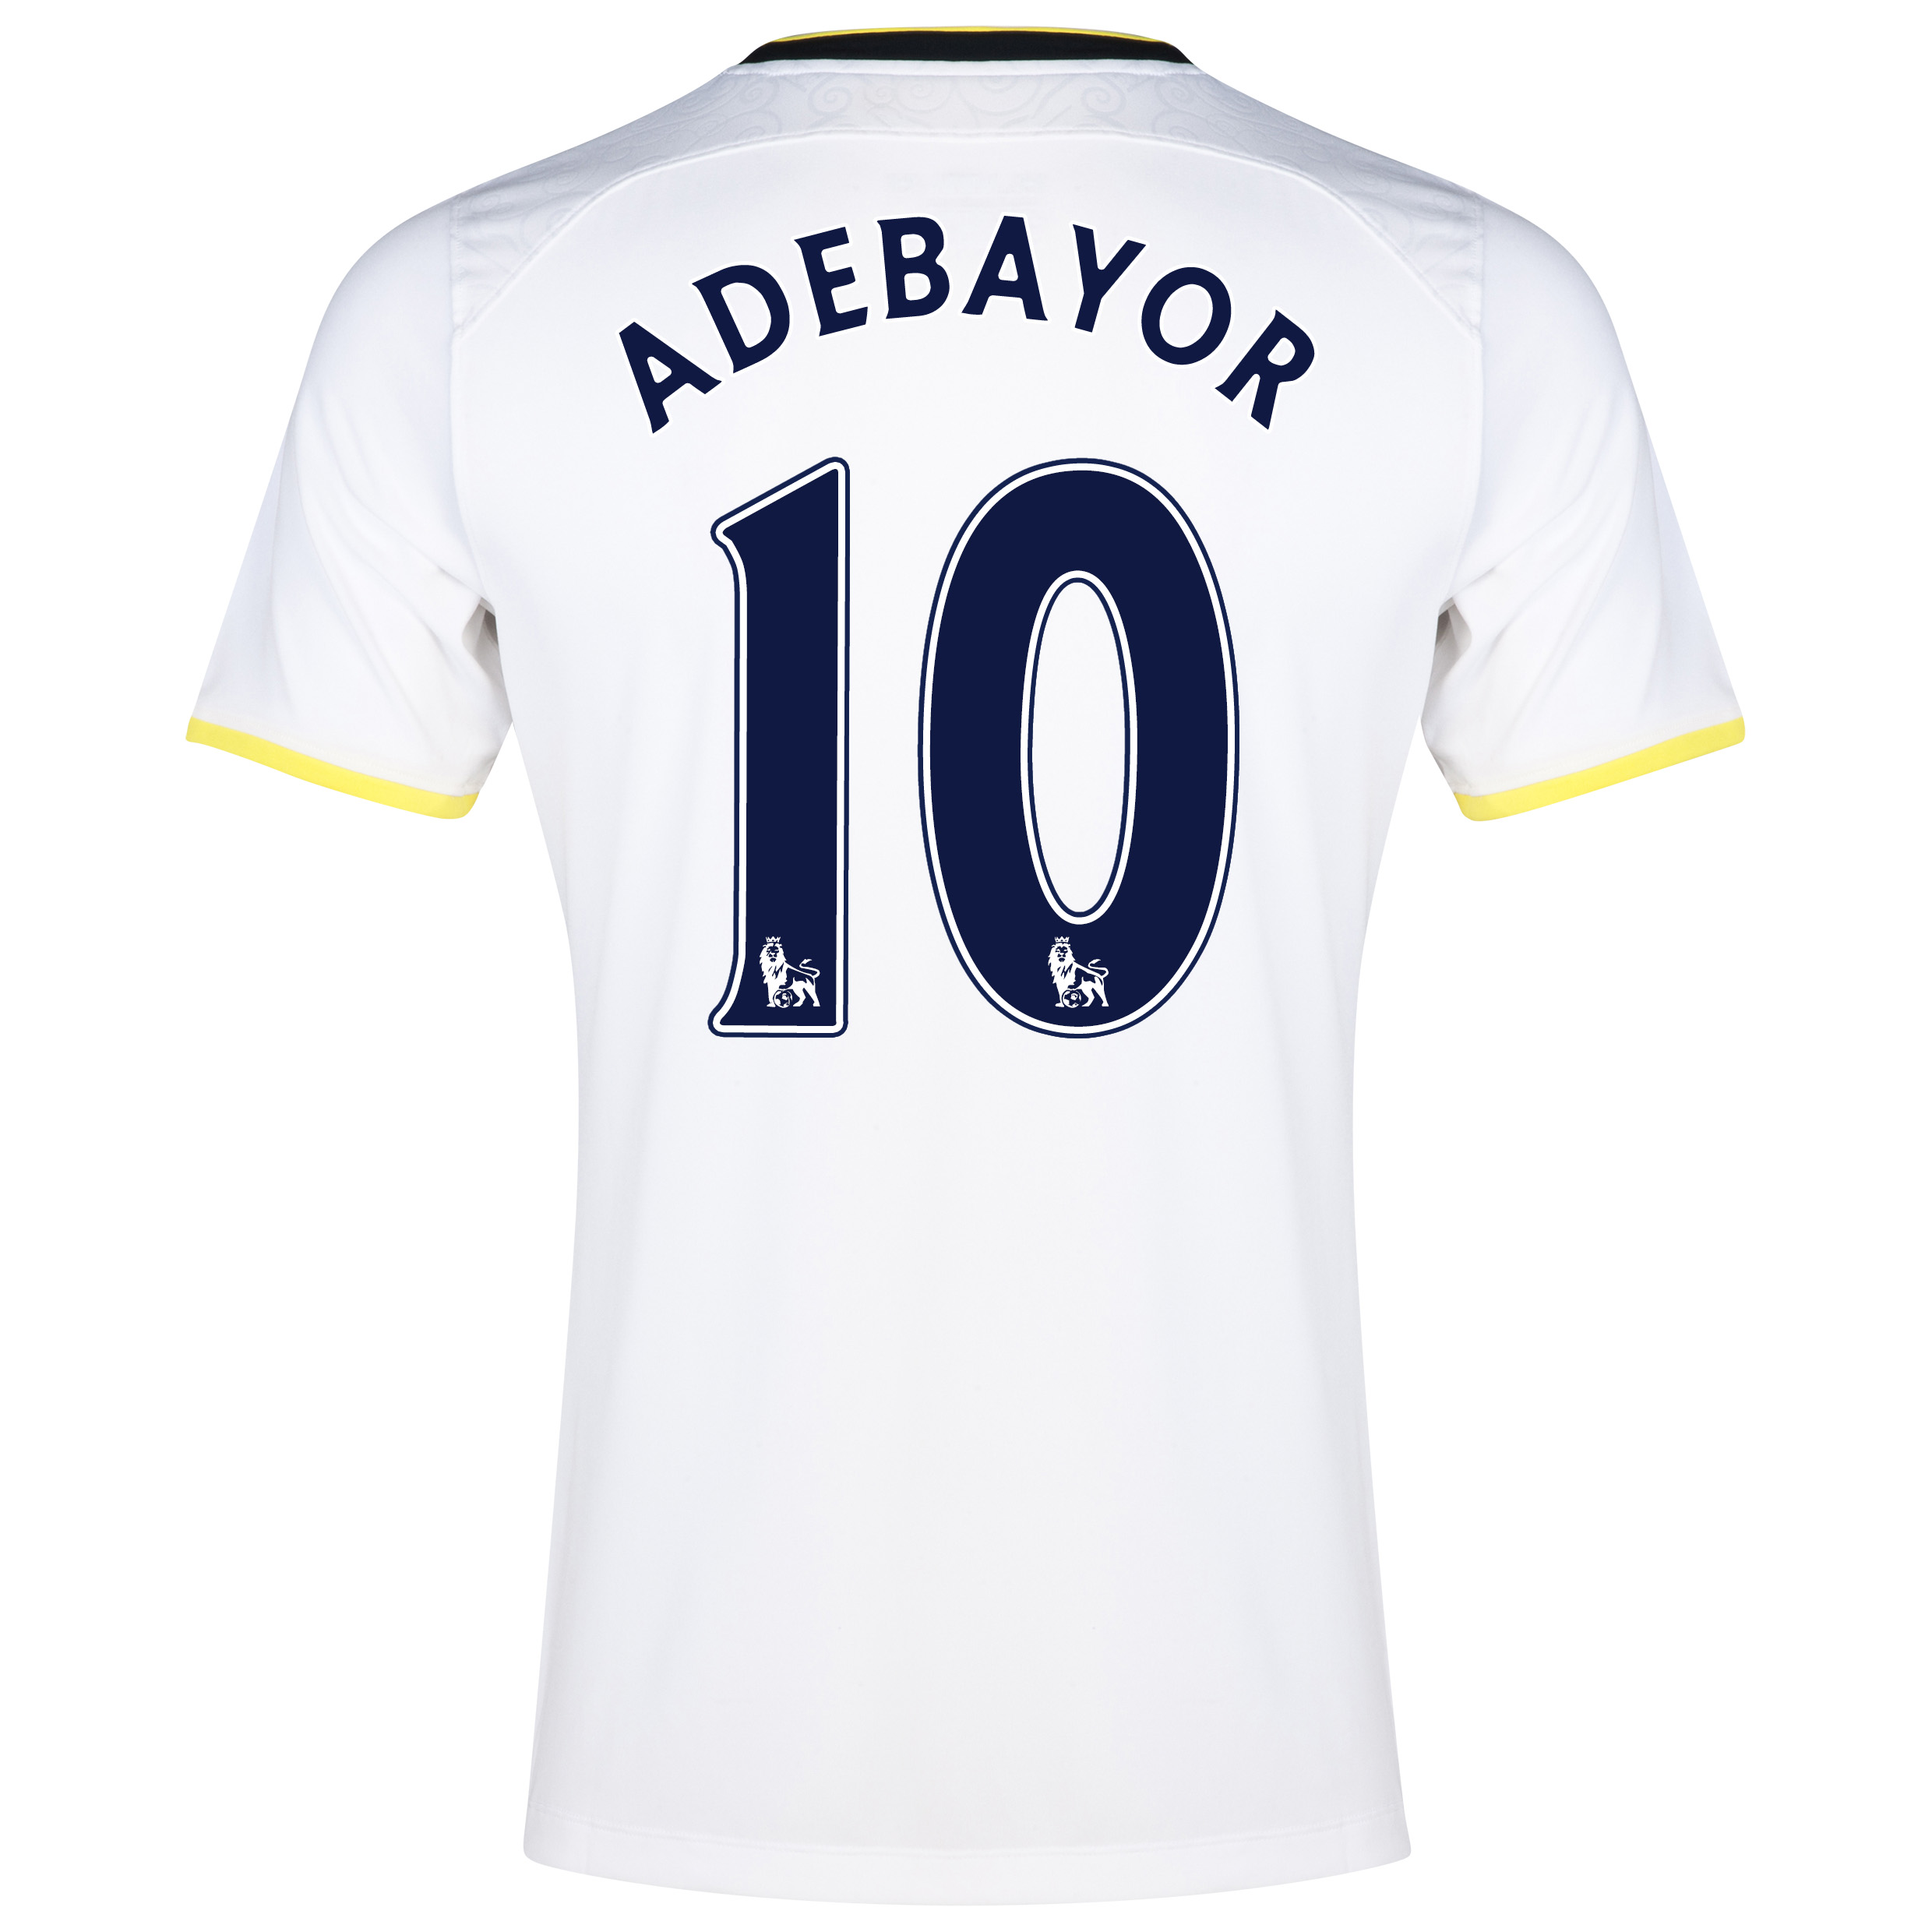 Tottenham Hotspur Home Shirt 2014/15 with Adebayor 10 printing